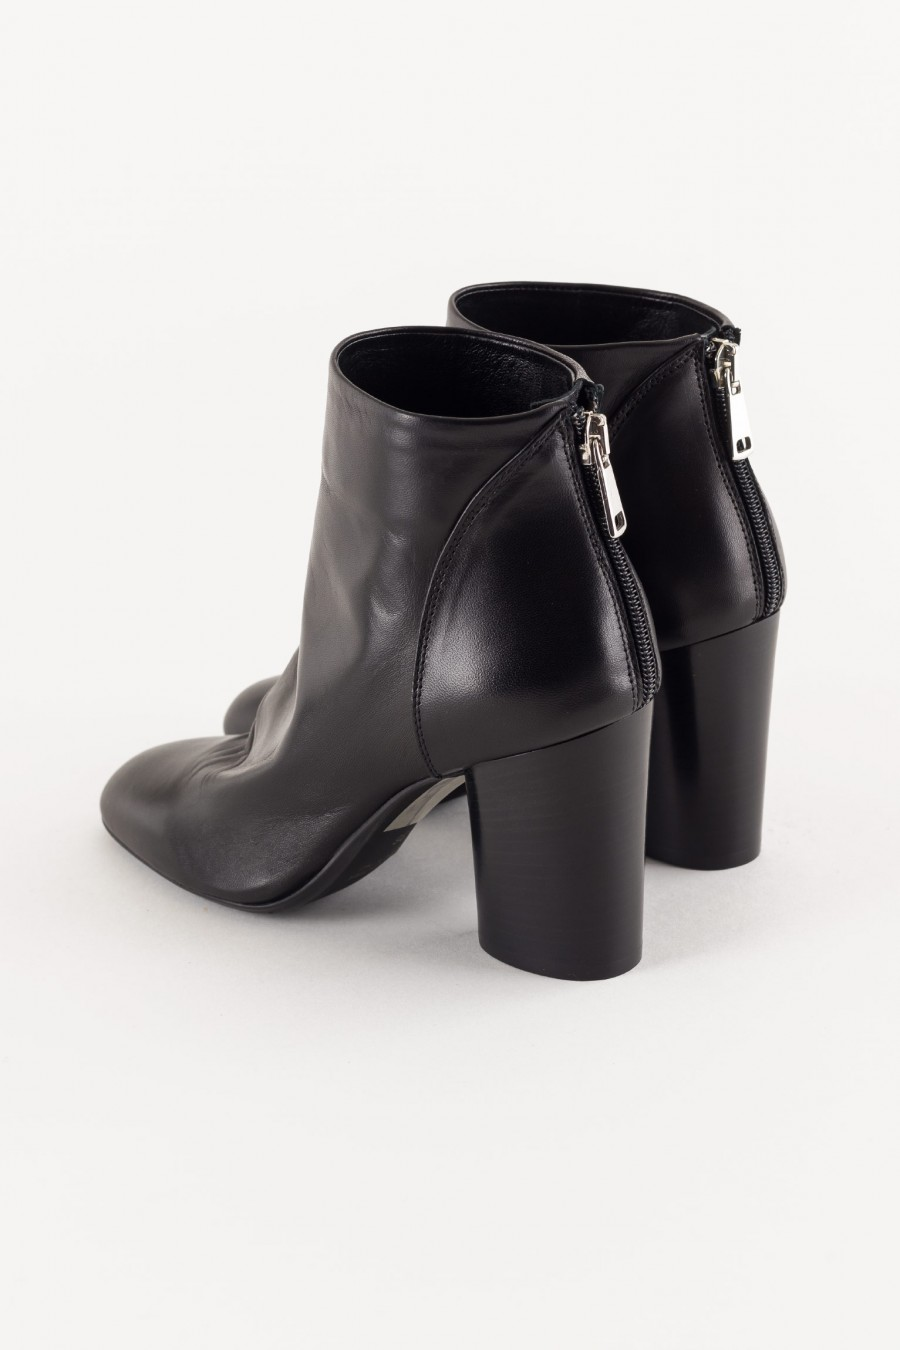 black boot with zip